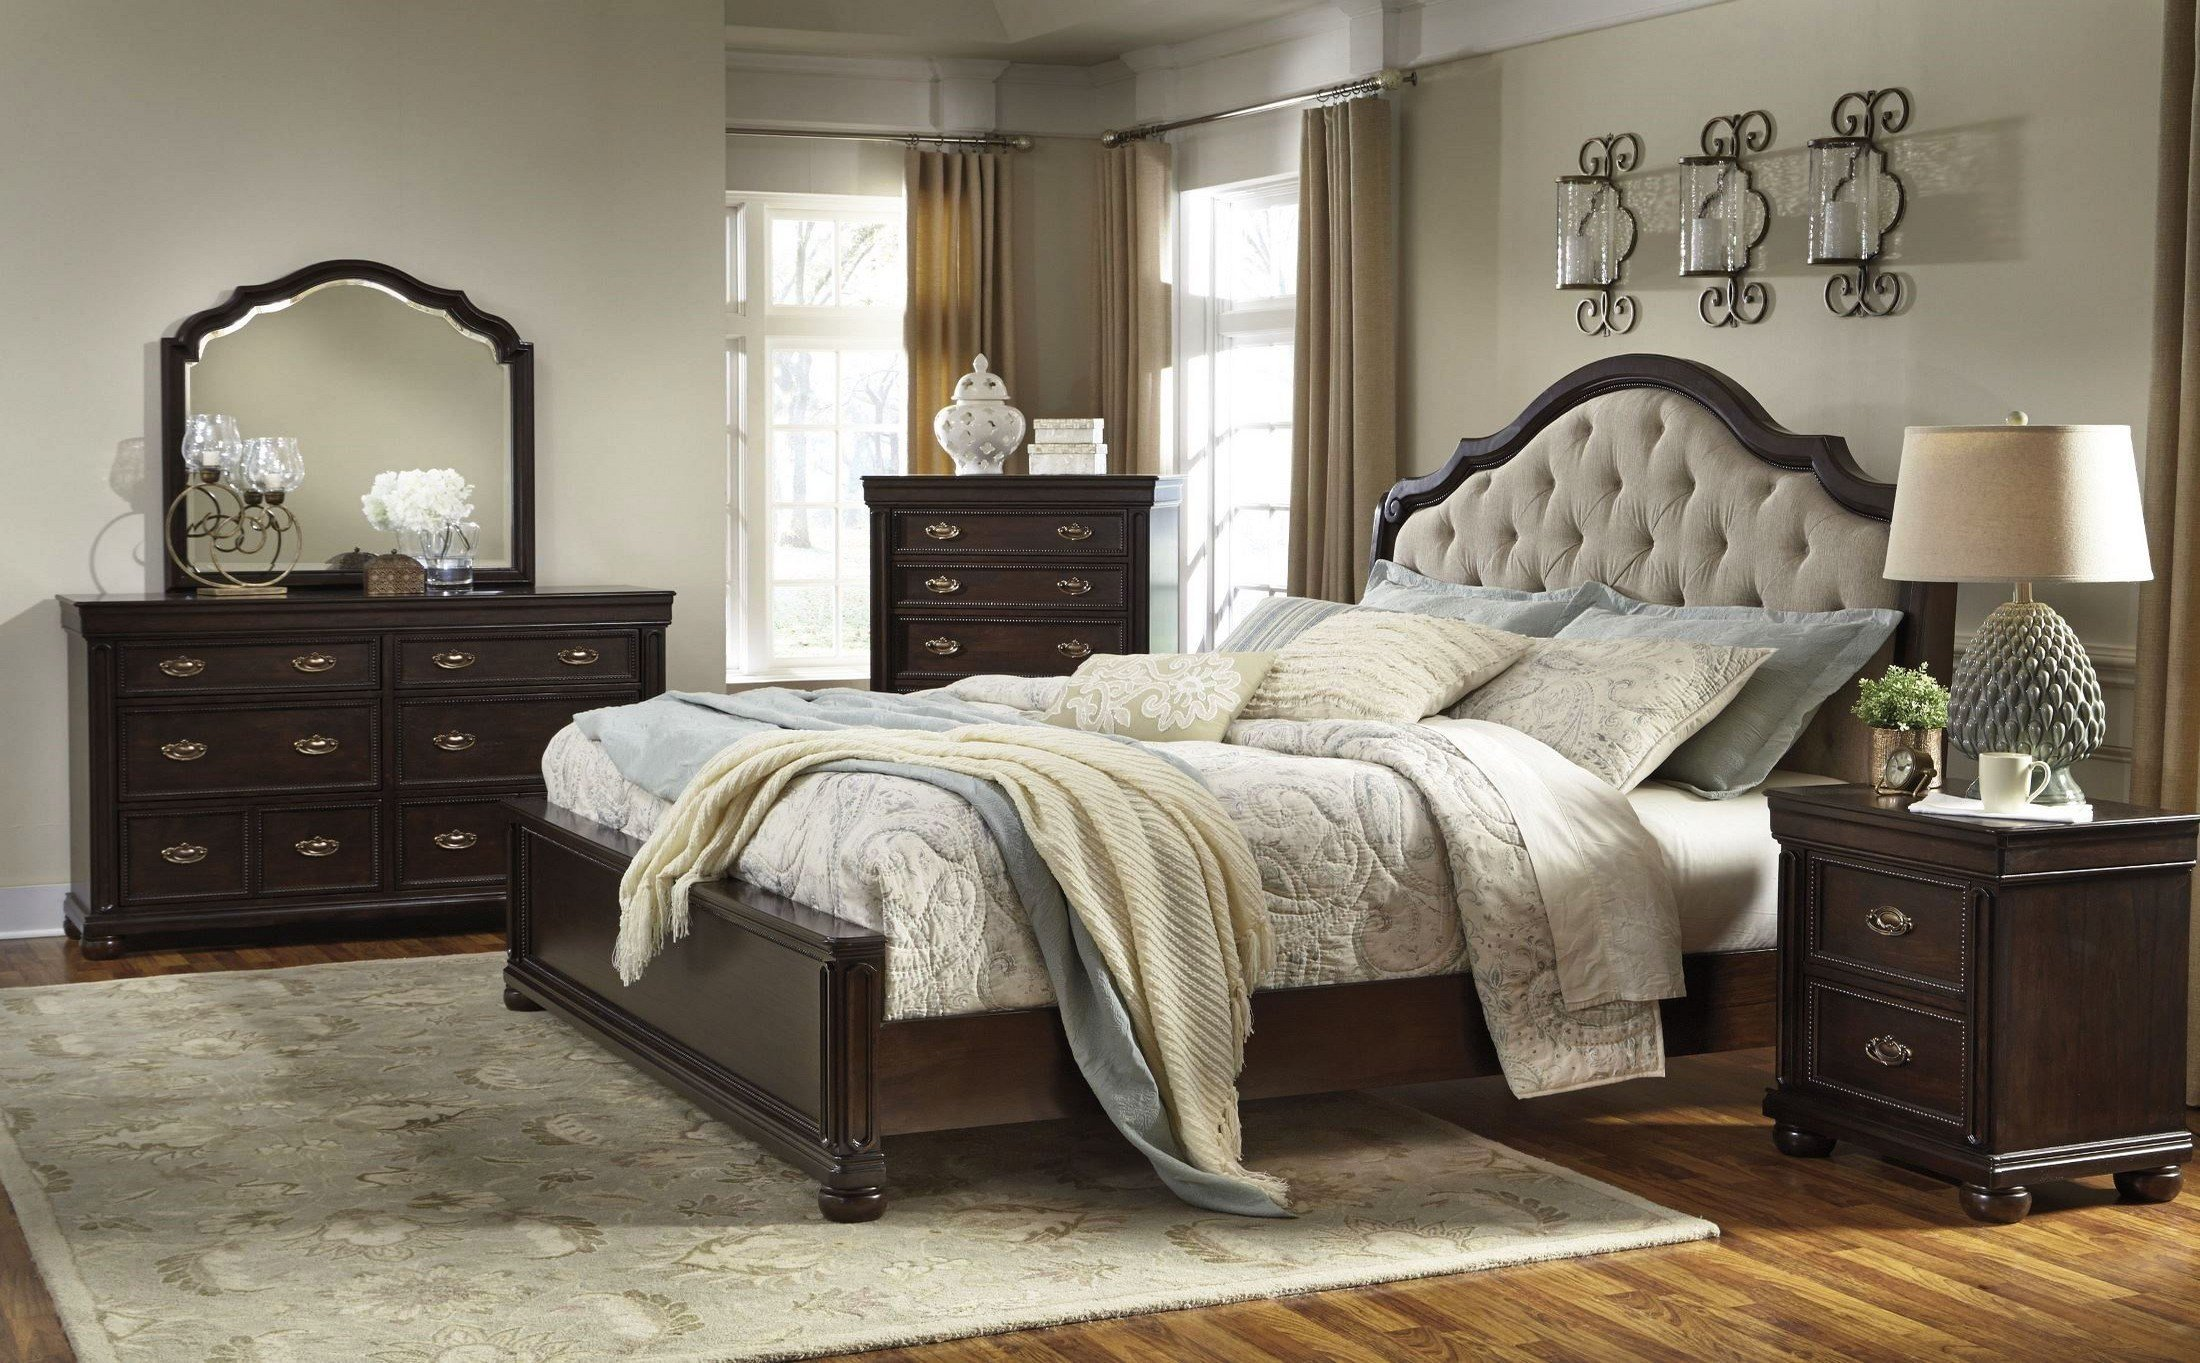 Best Moluxy Dark Brown Upholstered Sleigh Bedroom Set B596 54 With Pictures